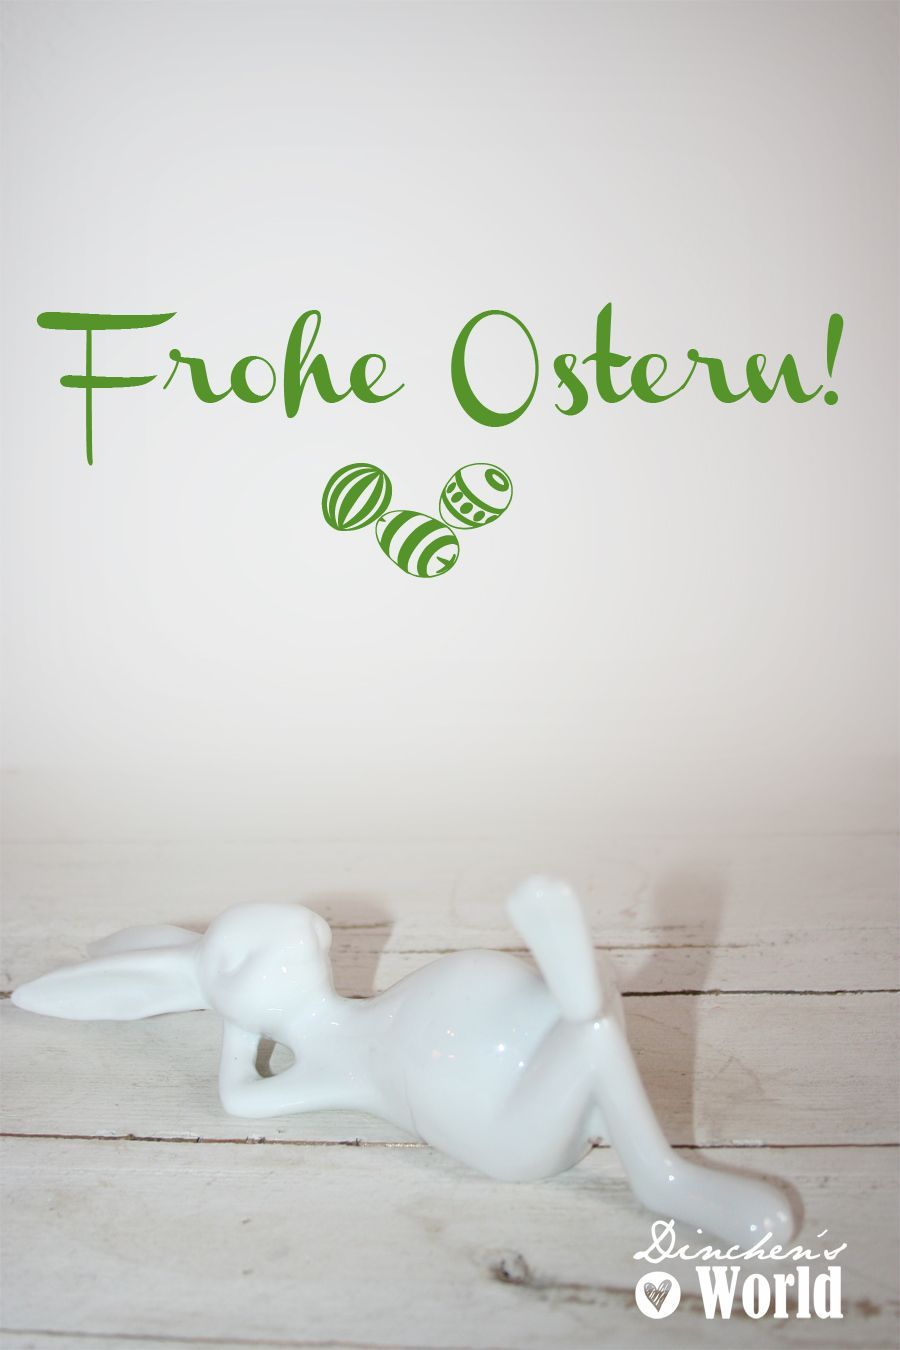 ostern by dinchensworld.wordpress.com